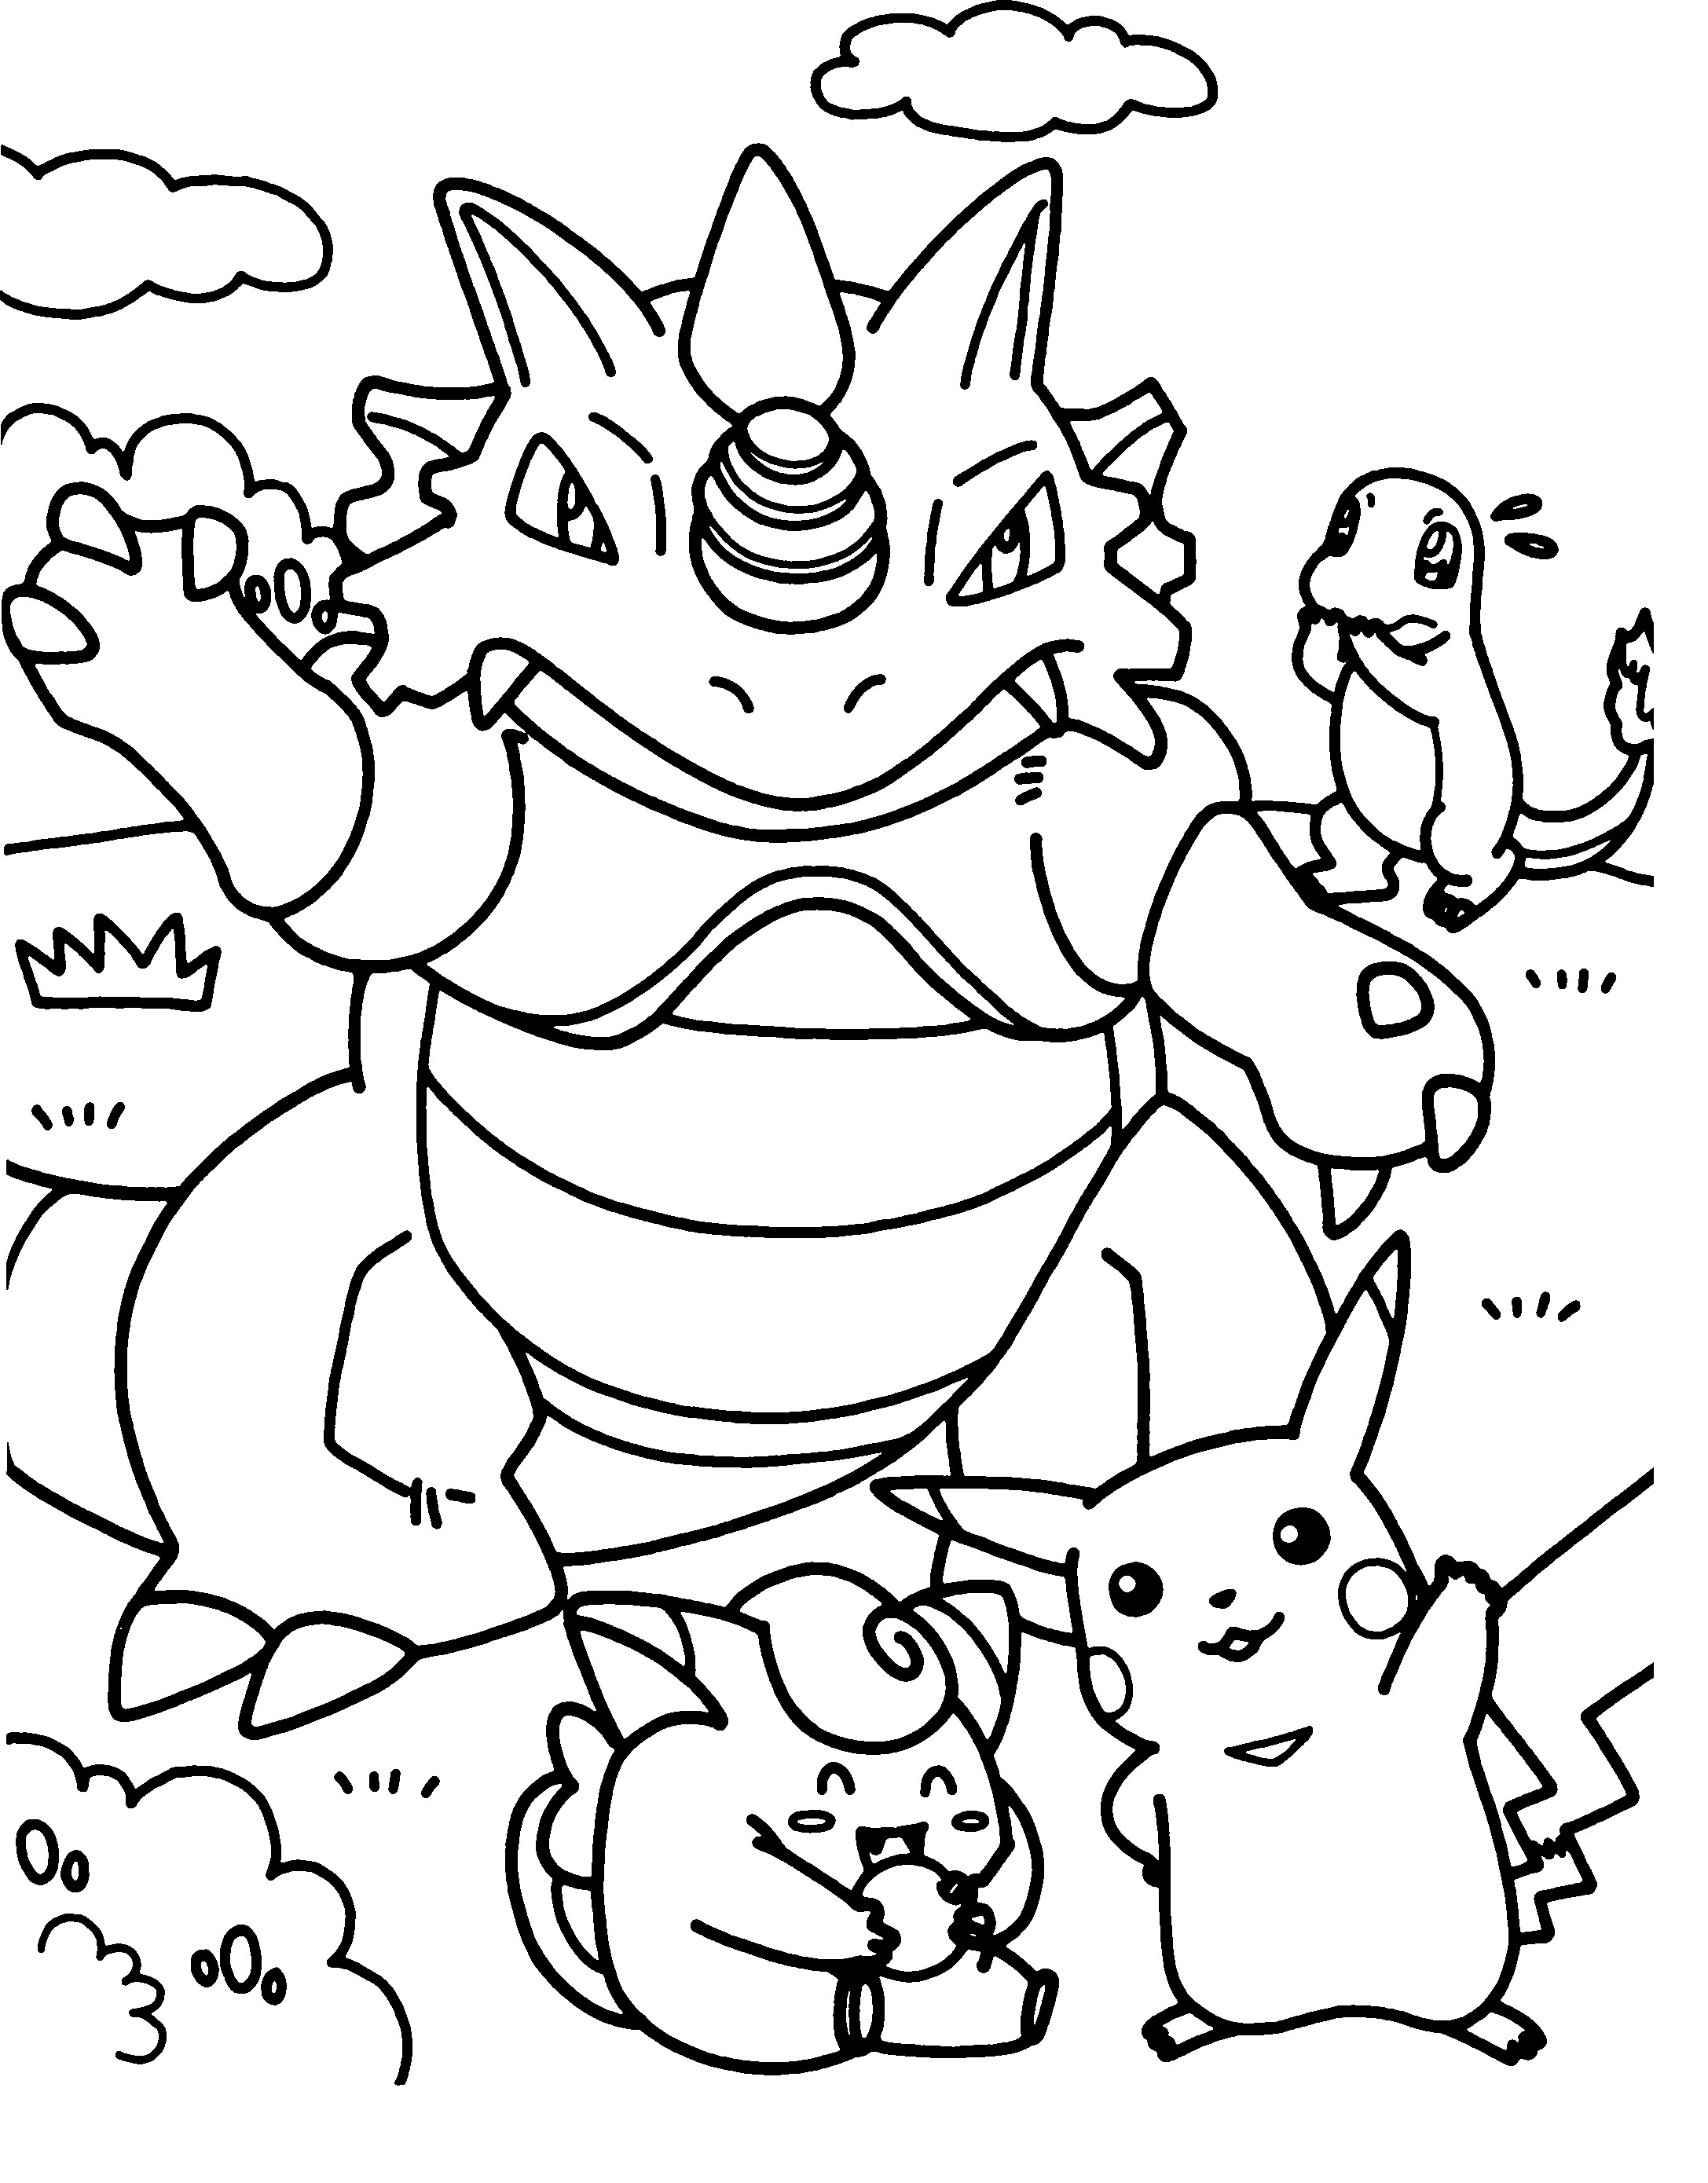 pokemon coloring books pokemon swampert coloring pages download and print for free books coloring pokemon